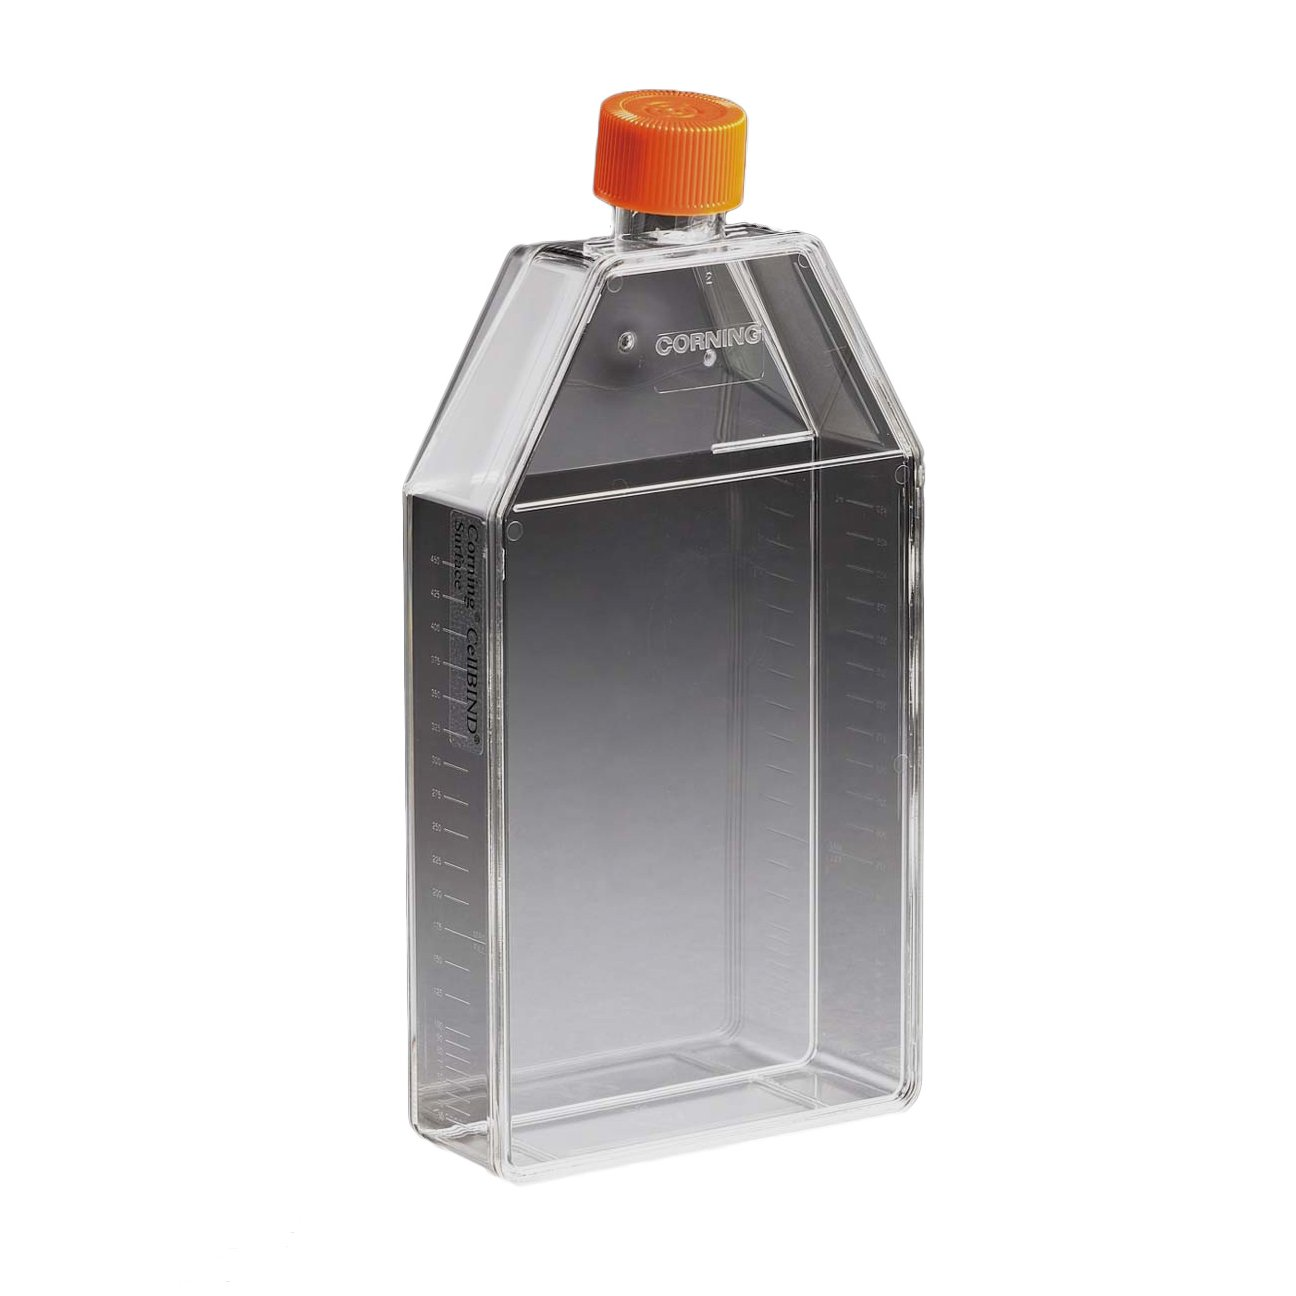 Corning 431079 Polystyrene 250mL Rectangular Angled Neck Cell Culture Flask with Orange HDPE Plug Seal Cap (Case of 50)